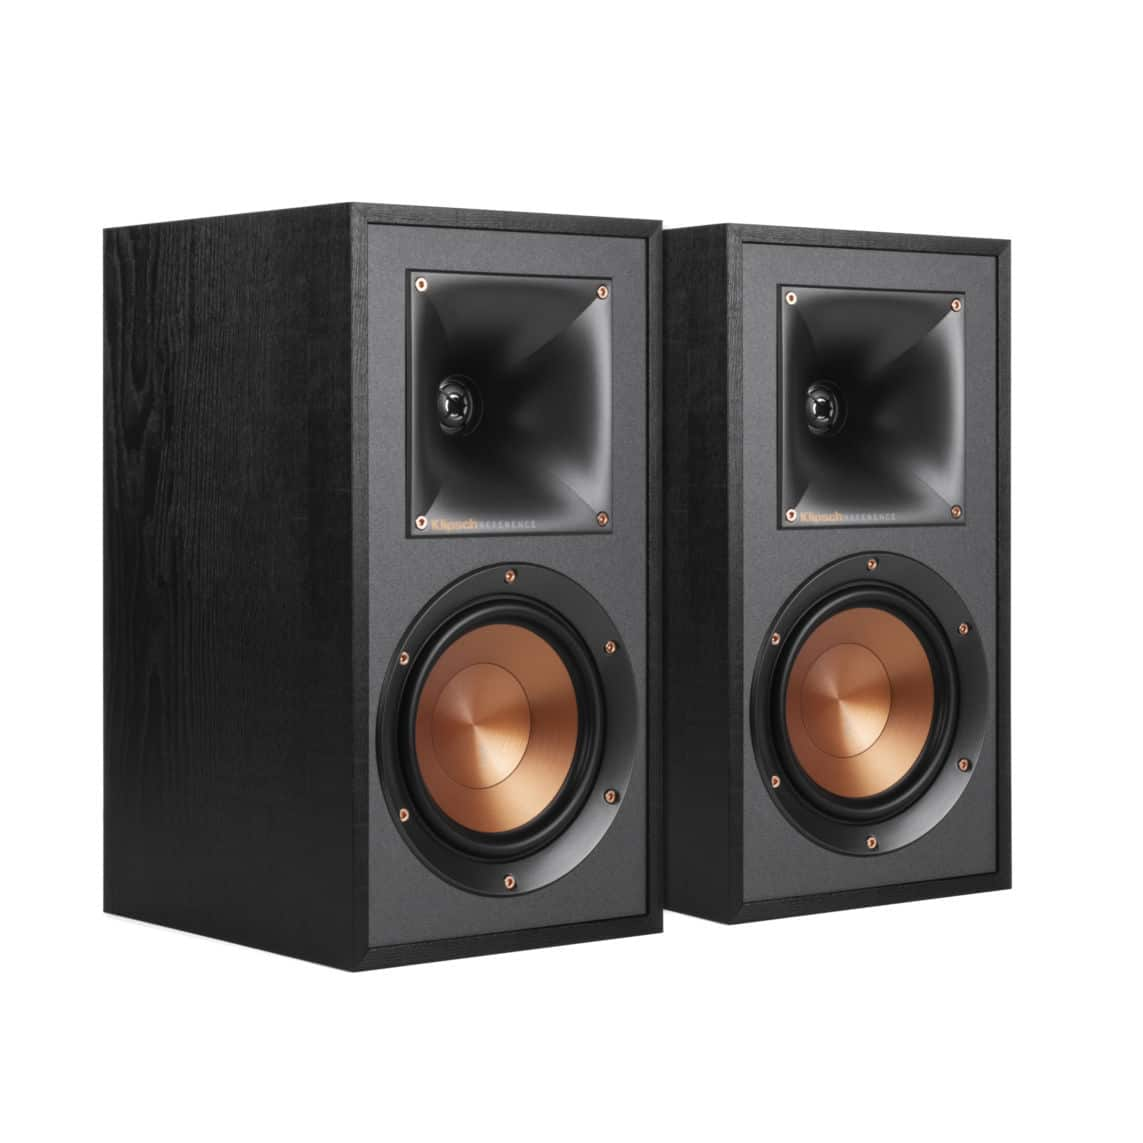 Klipsch Reference Series R-51M Bookshelf Speakers (Pair) $124 + Free Shipping